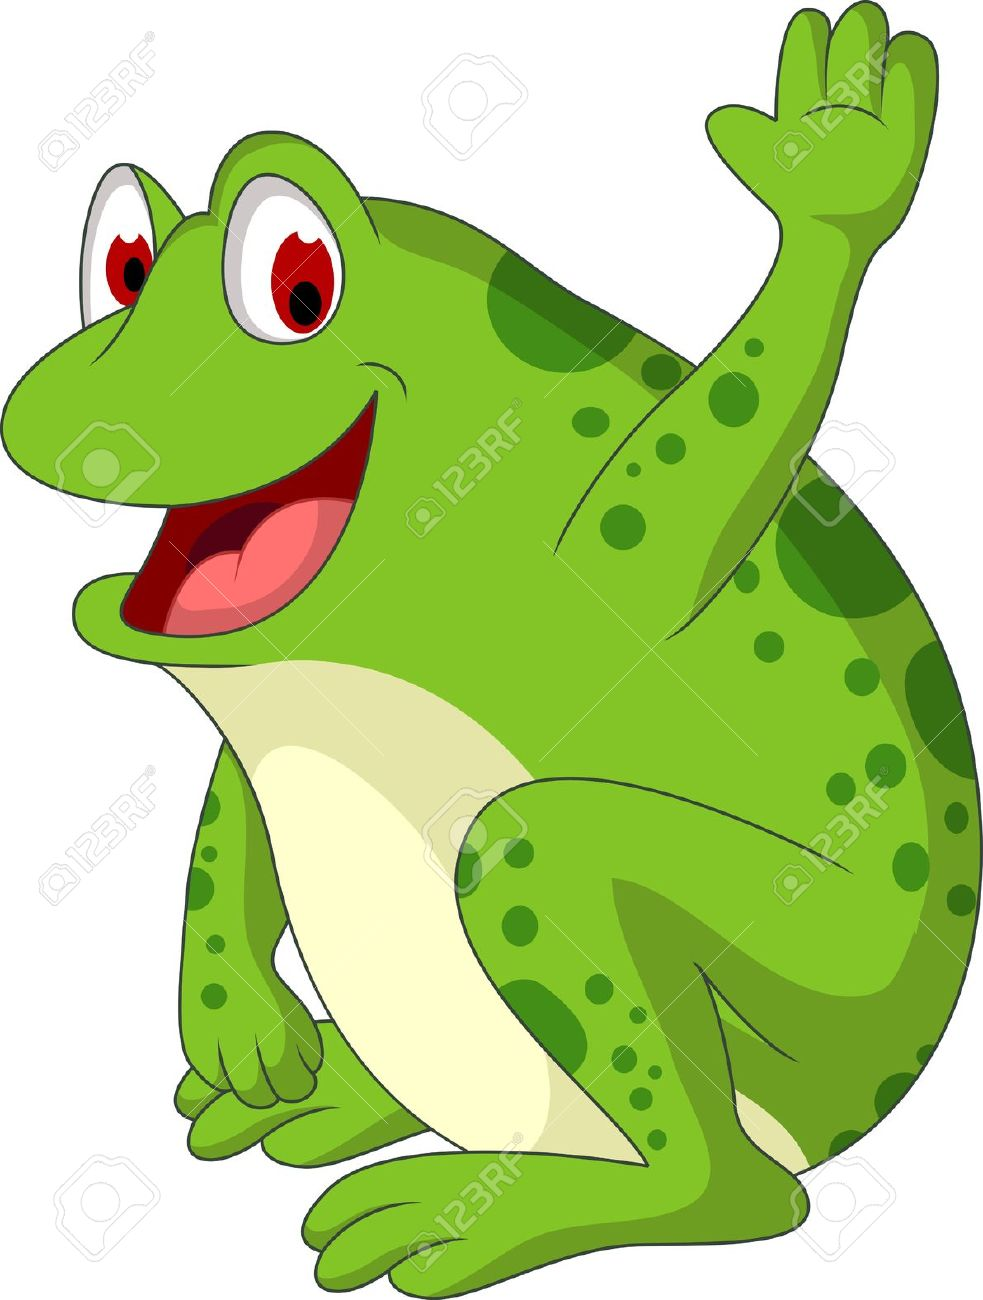 Amphibian clipart cute frog Clipart 90 Toad Toad Top